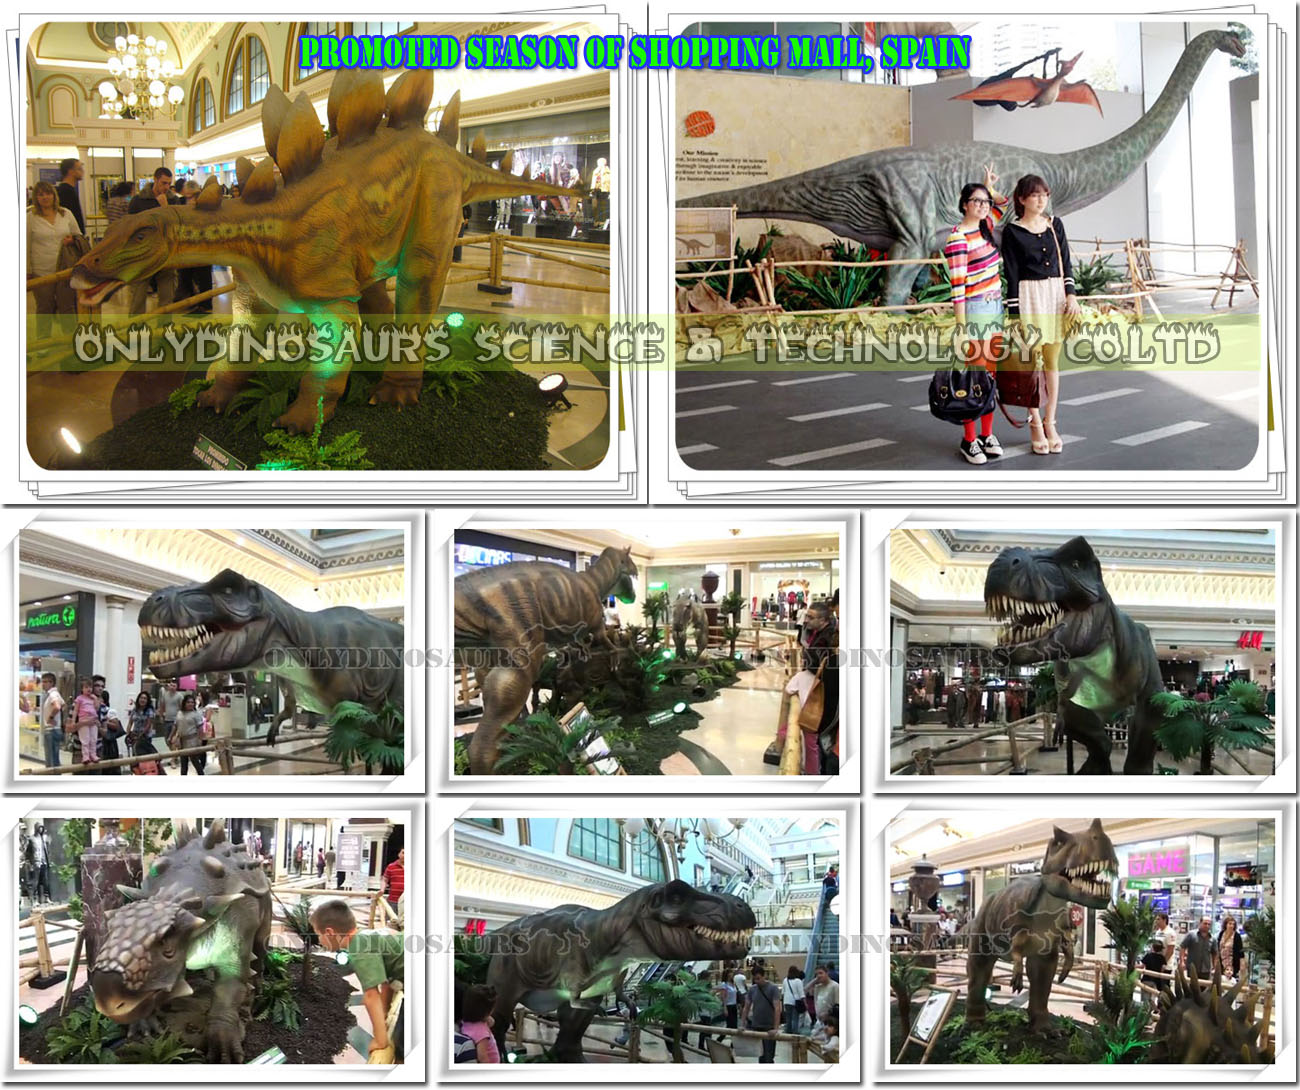 Dino Show for Mall Promotion Season